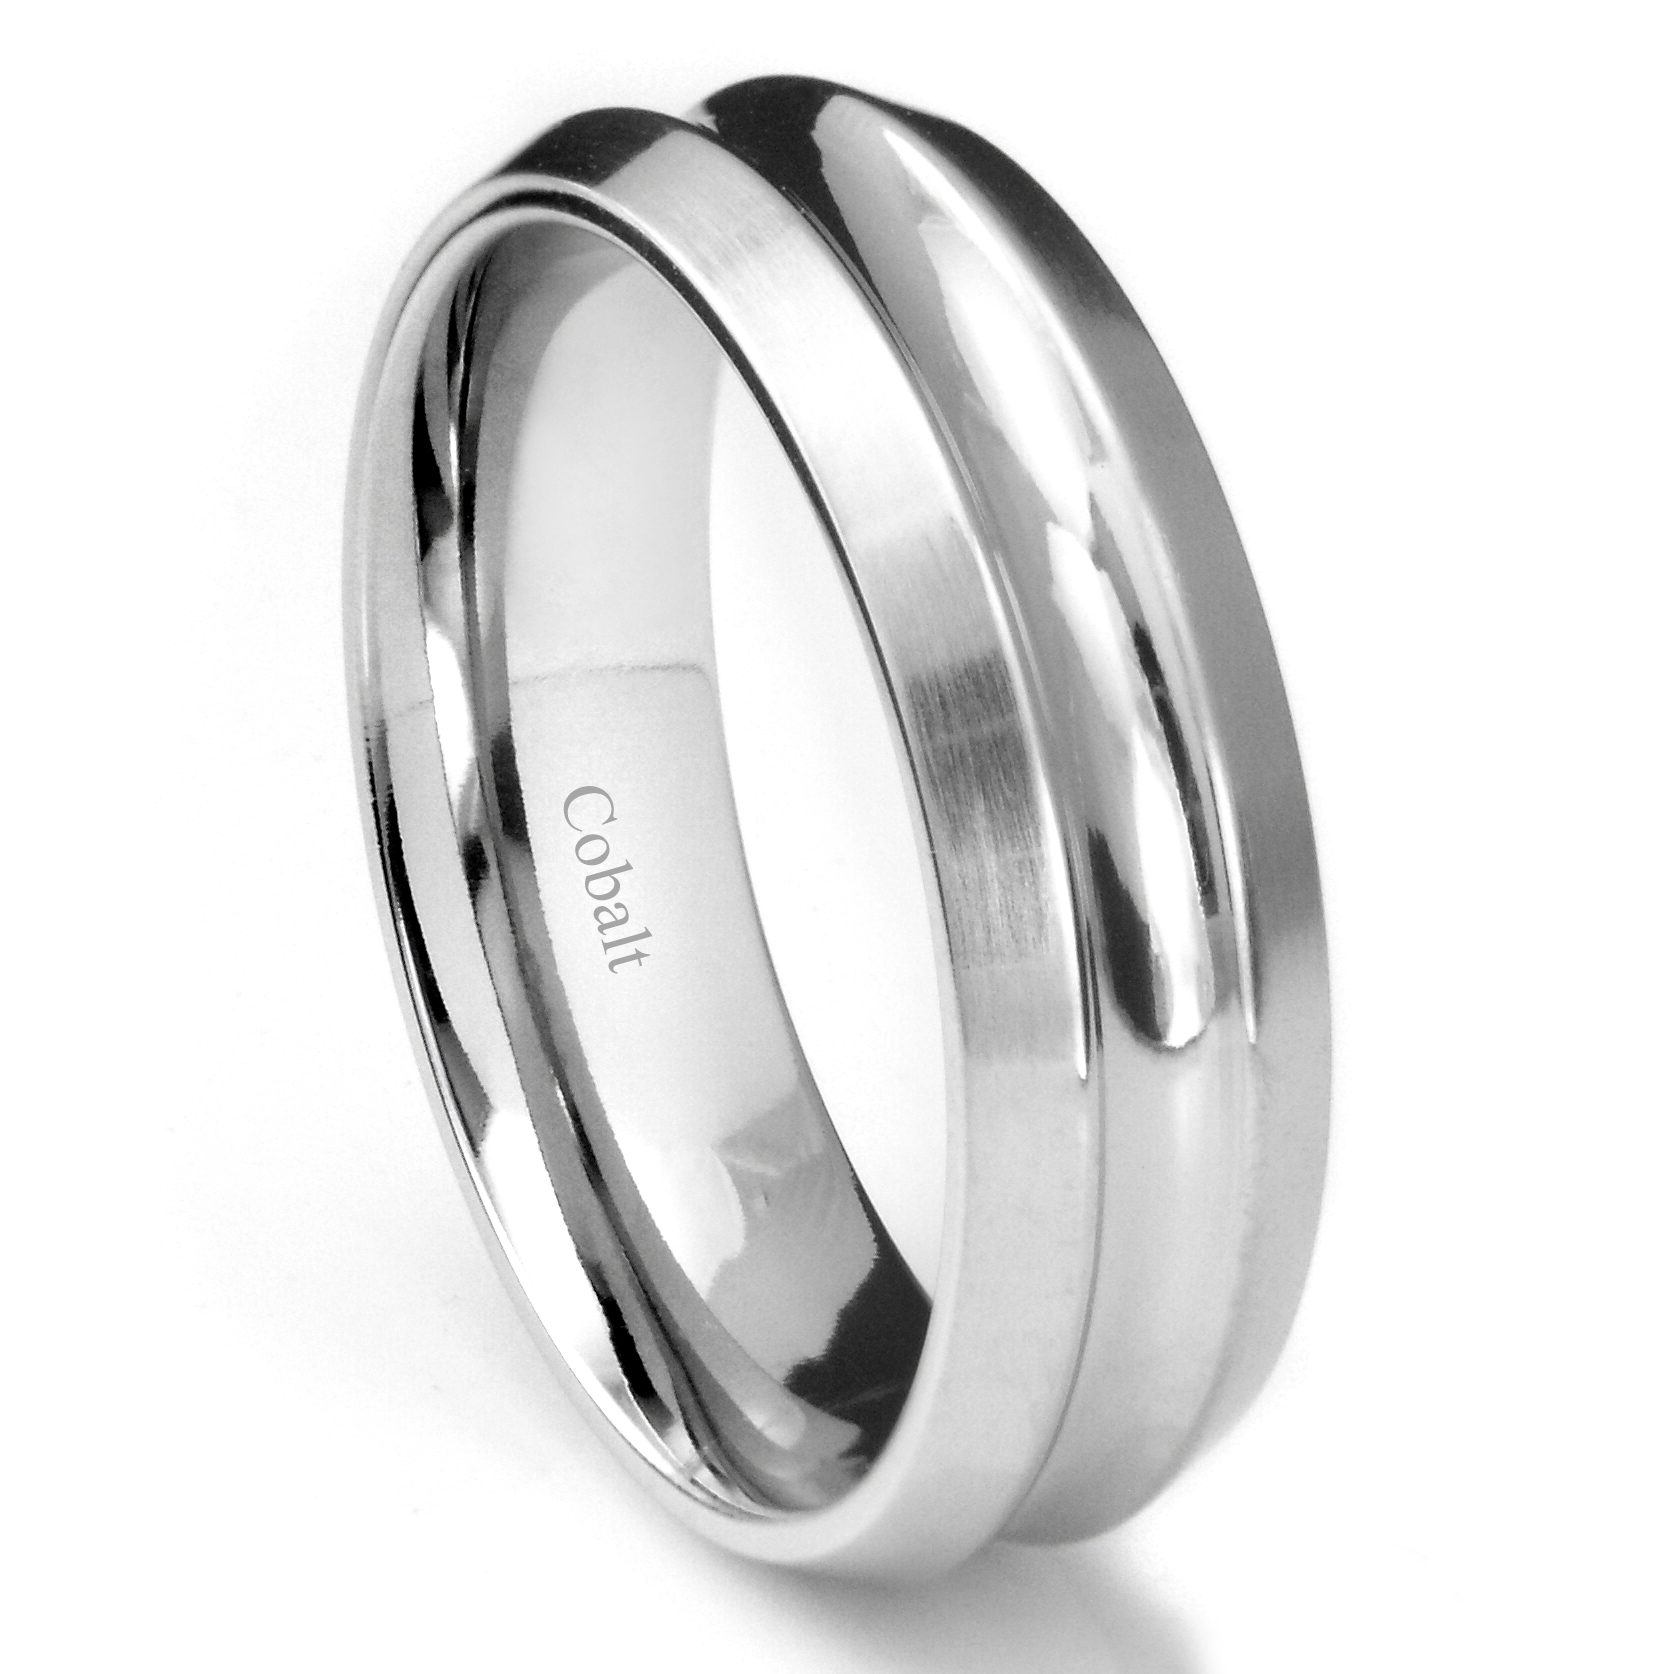 Cobalt Xf Chrome 8mm Concave Wedding Band Ring W/ Beveled Edges Intended For Recent Satin Center Grooved Edge Wedding Band In Cobalt (View 6 of 15)